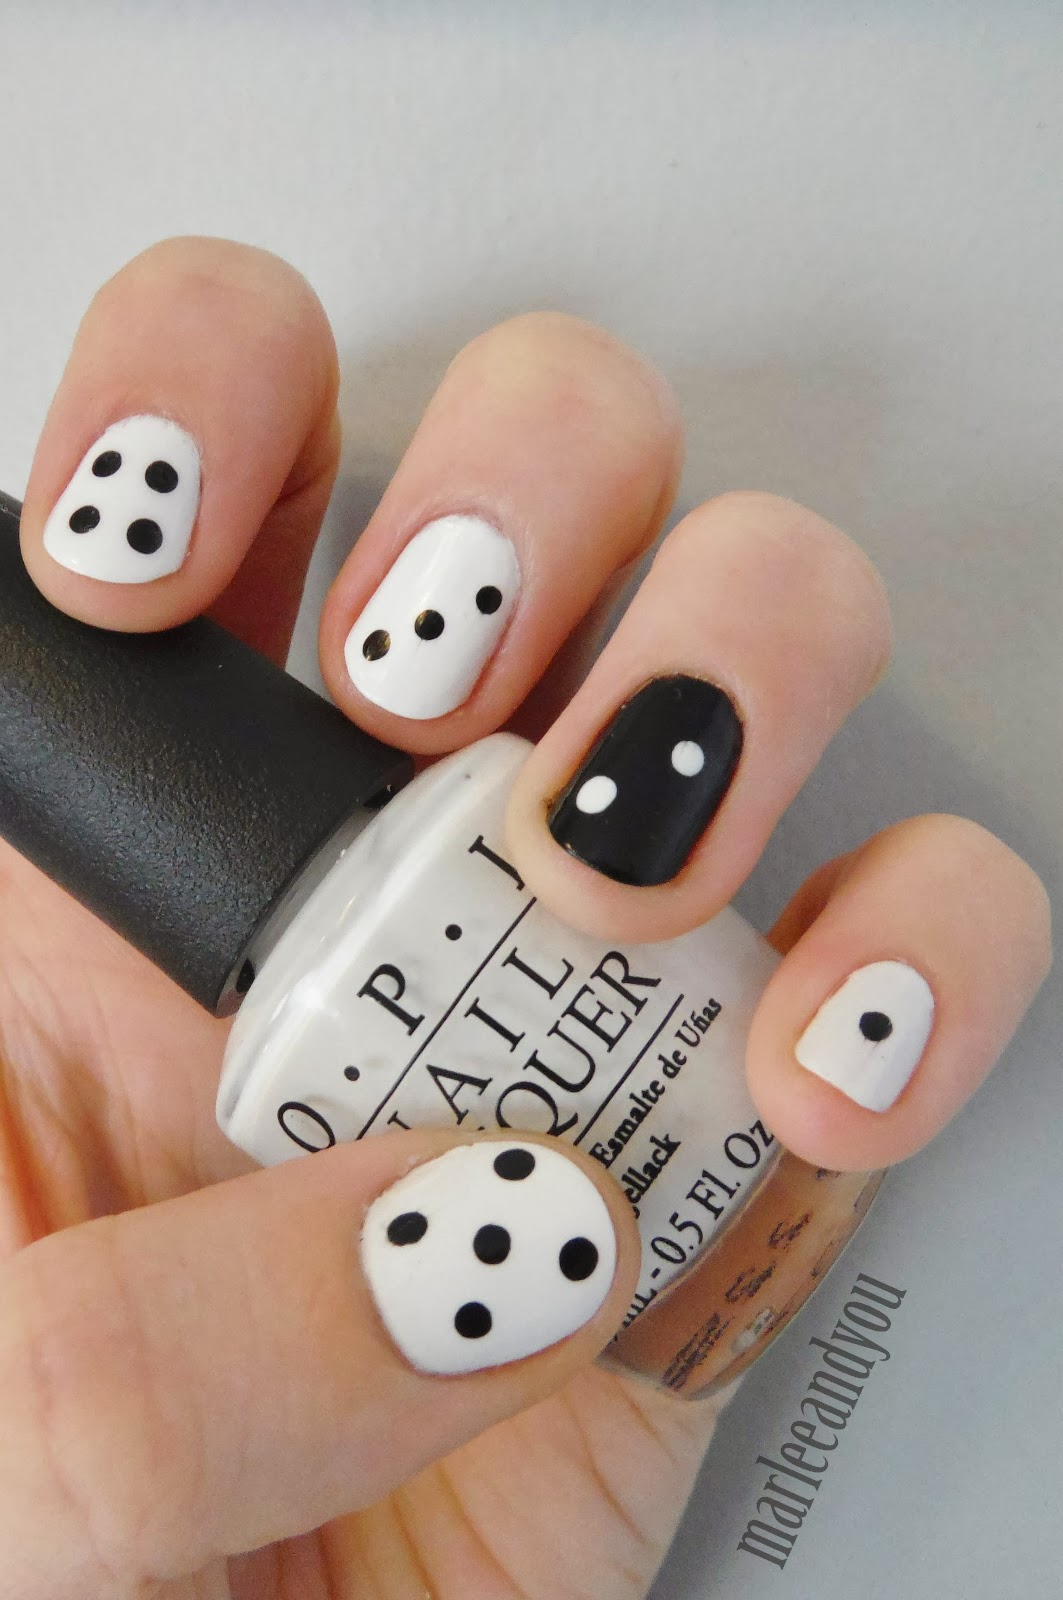 Board games inspired nail art if youre wanting to show your gaming cred because we all know that goes for board games too try out some dice to get the prinsesfo Gallery